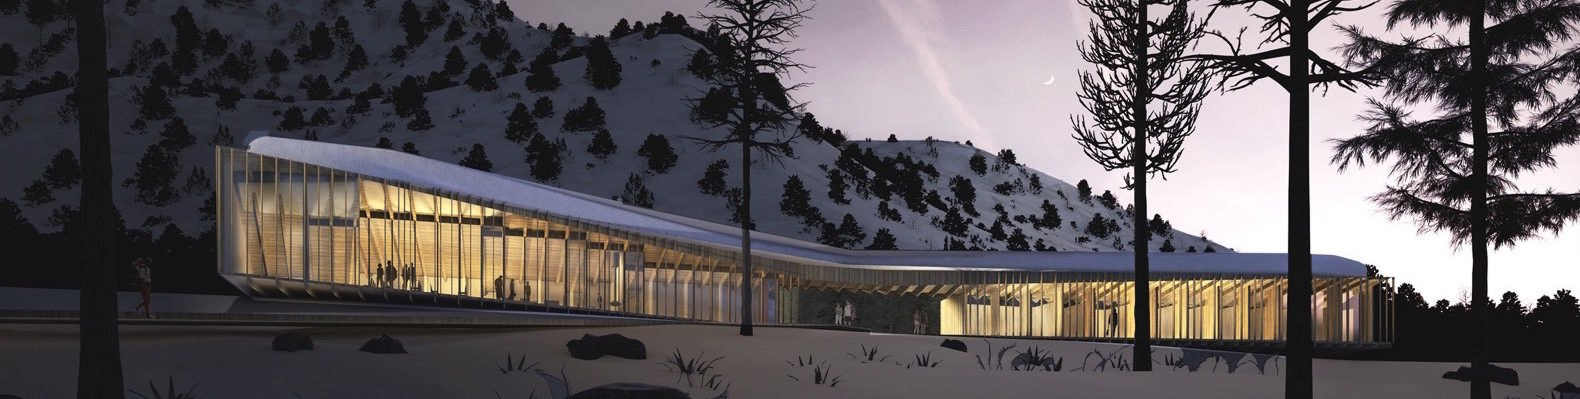 rendering of long cabin in woods lit up at night